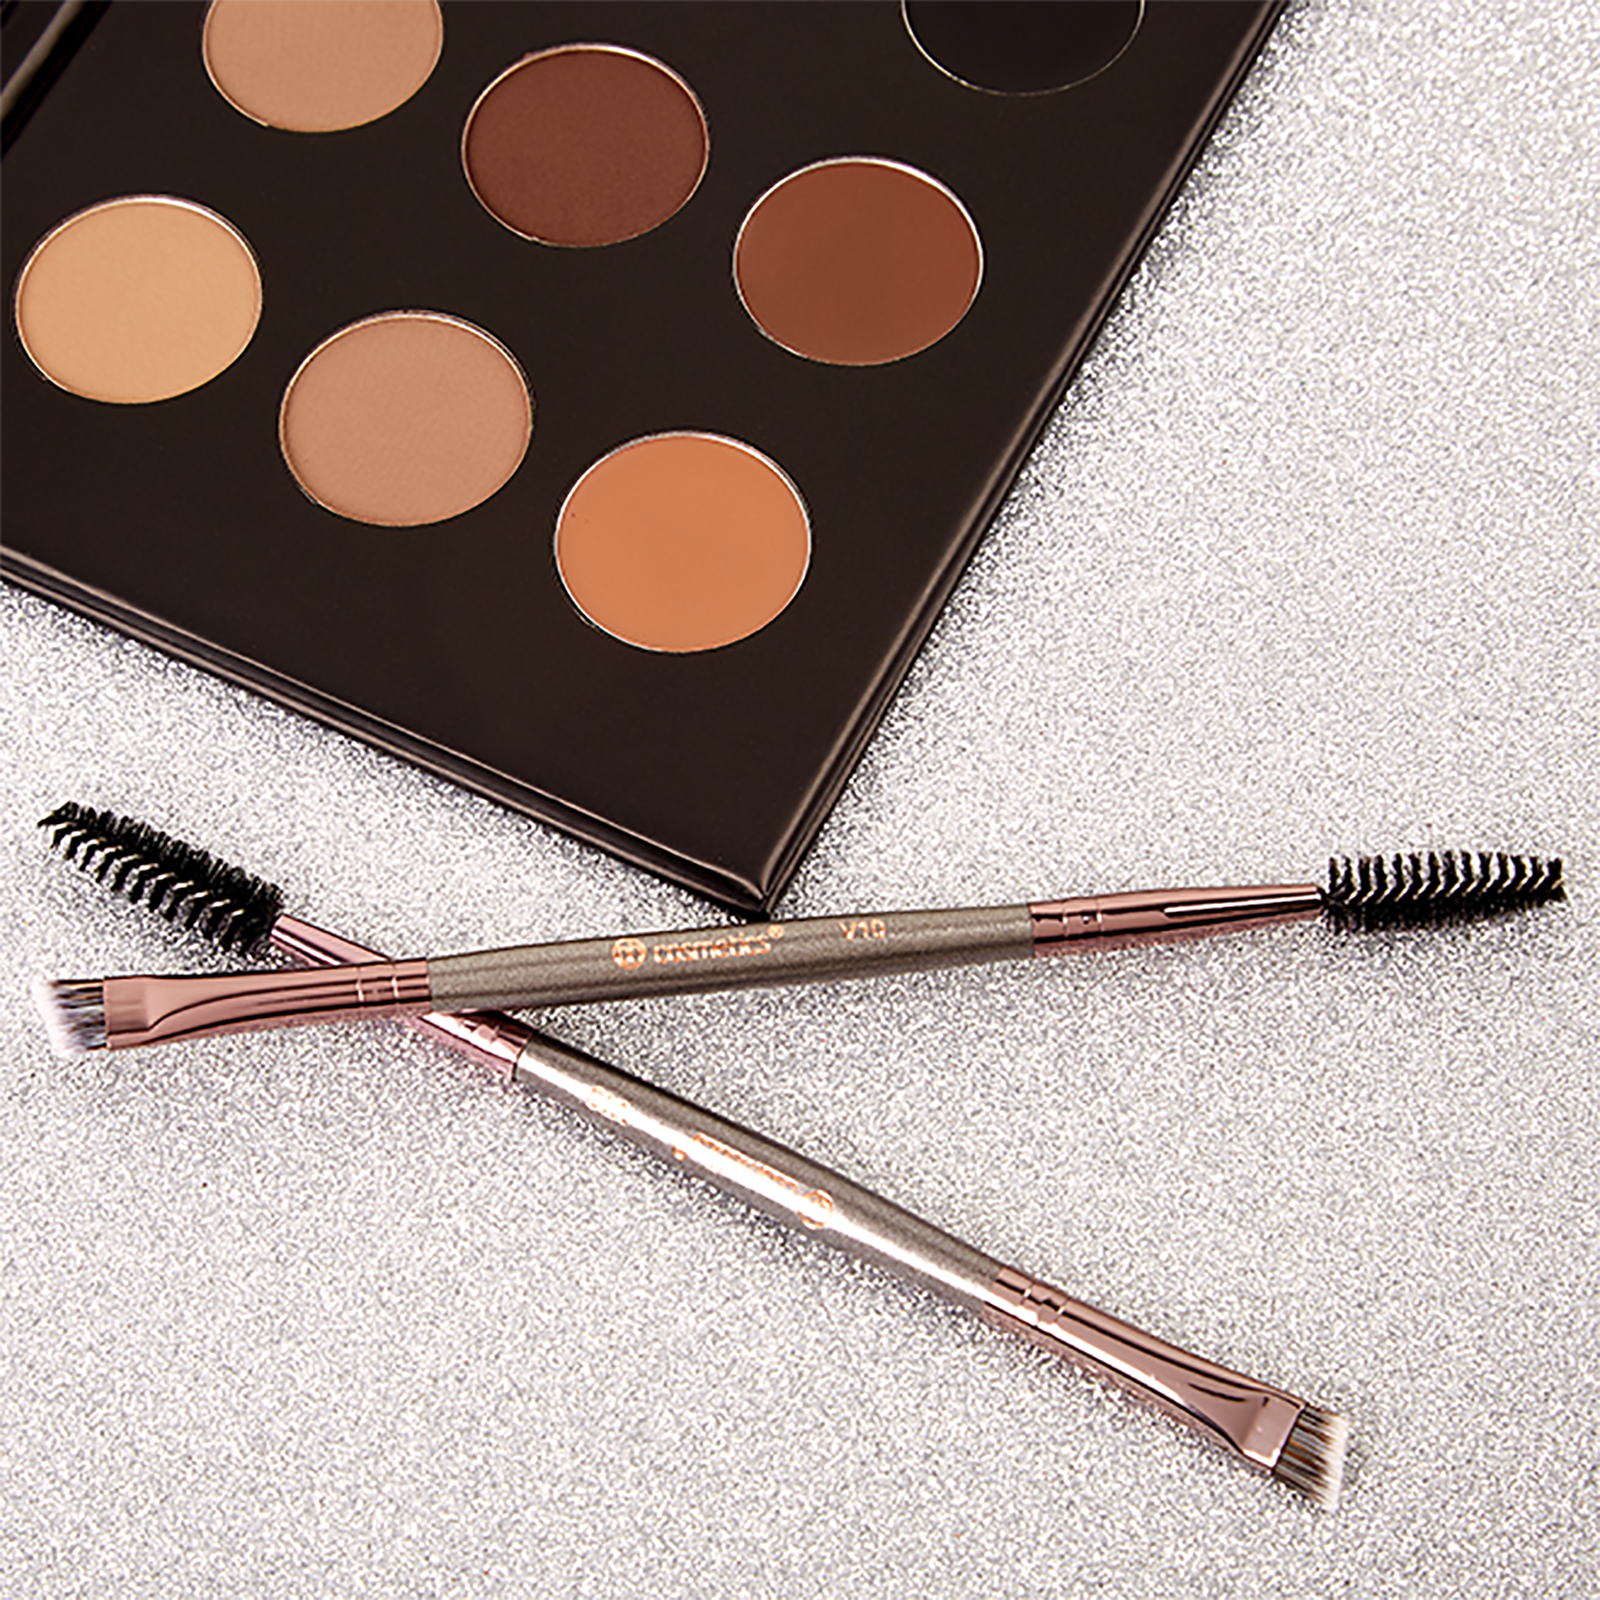 BH_Cosmetics_VIVA_GLAM_Magazine_Our_Favorite_BH_Cosmetics_Vegan_Brushes